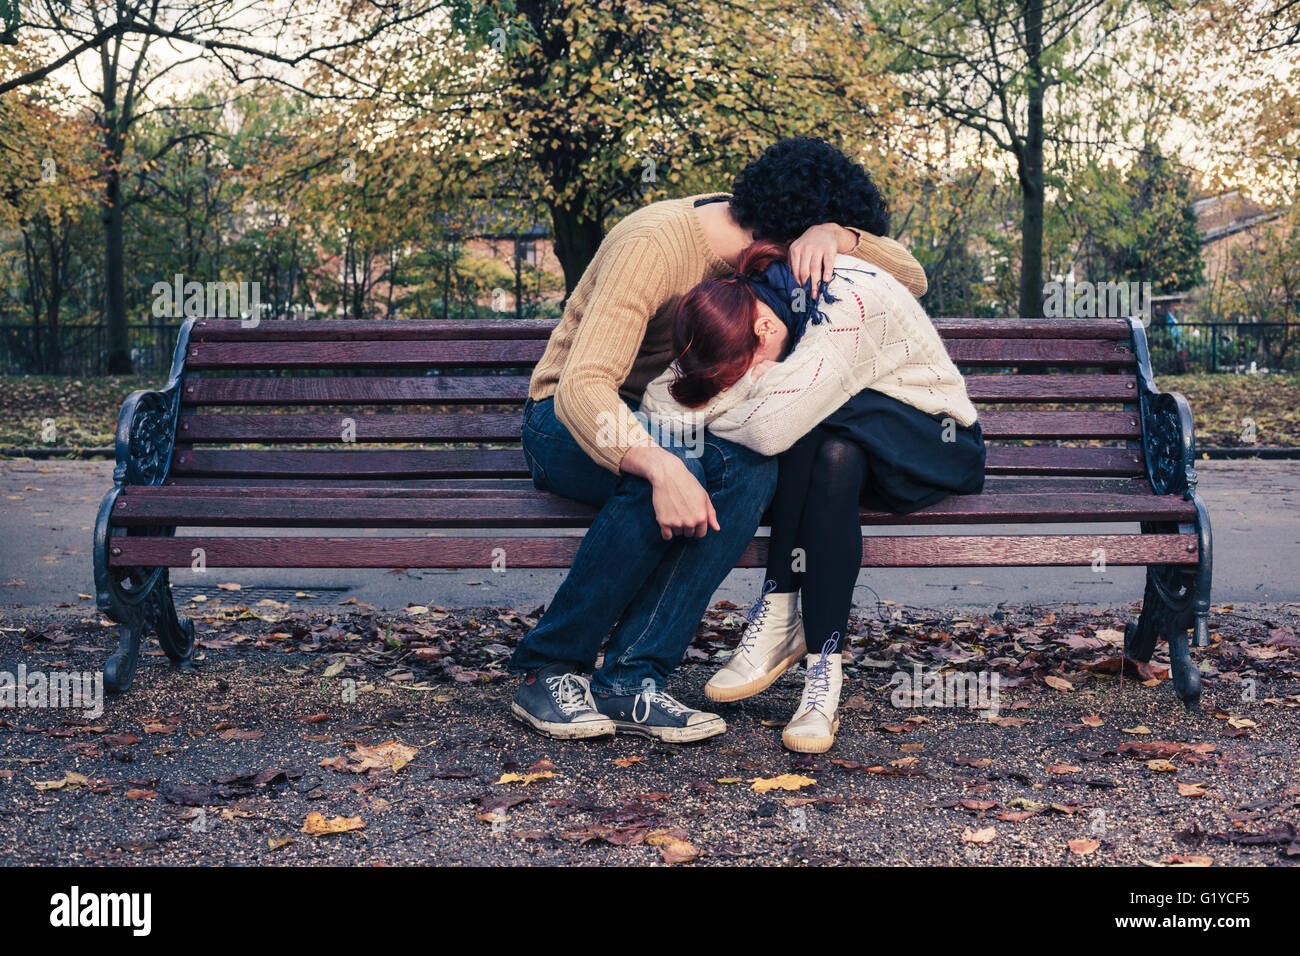 A sad young couple is embracing on a park bench in autumn - Stock Image